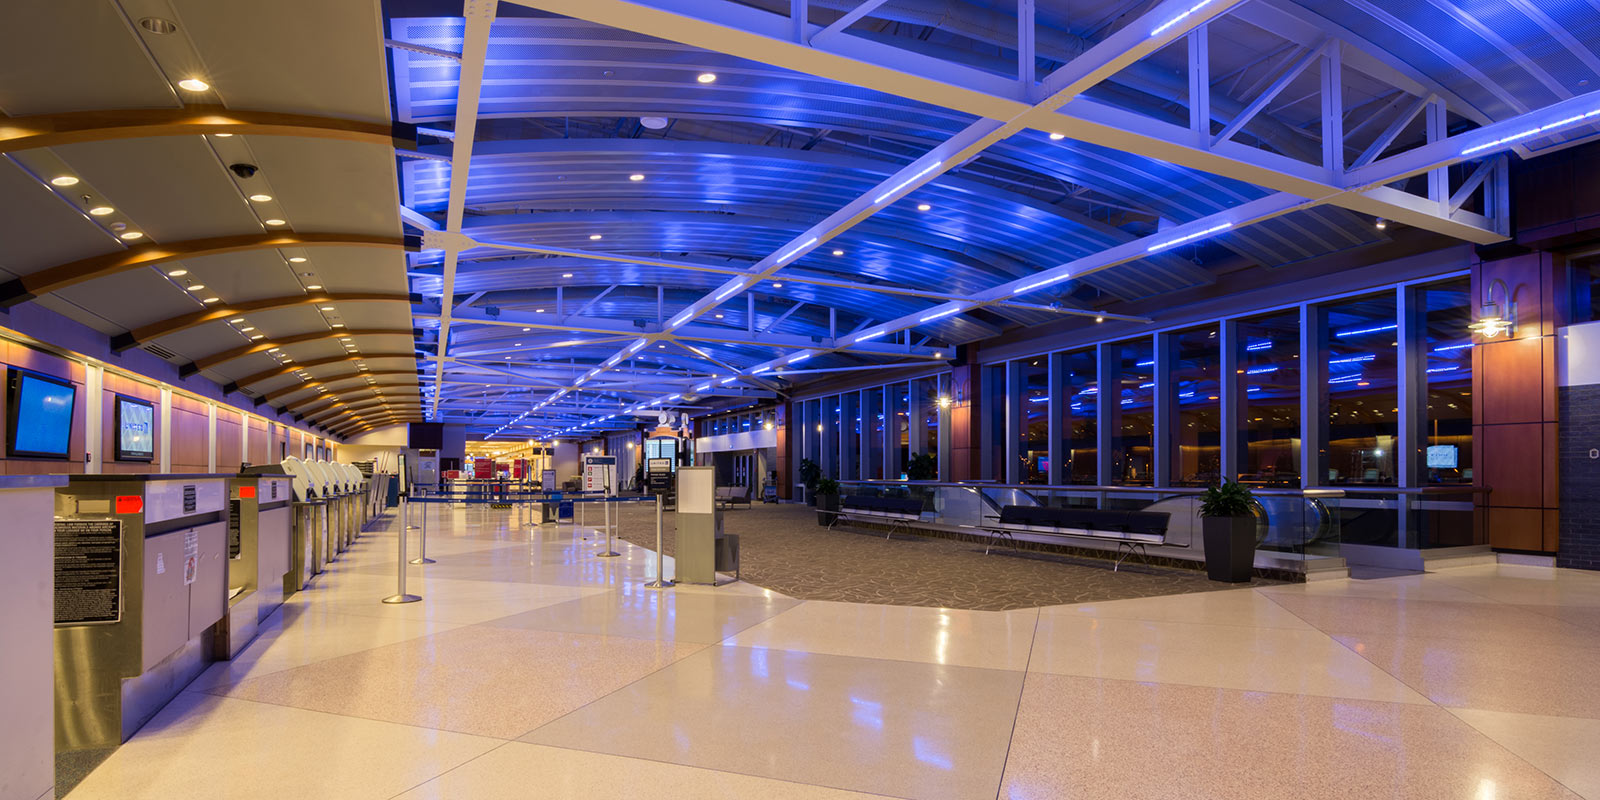 piedmont triad international airport ceiling redesign